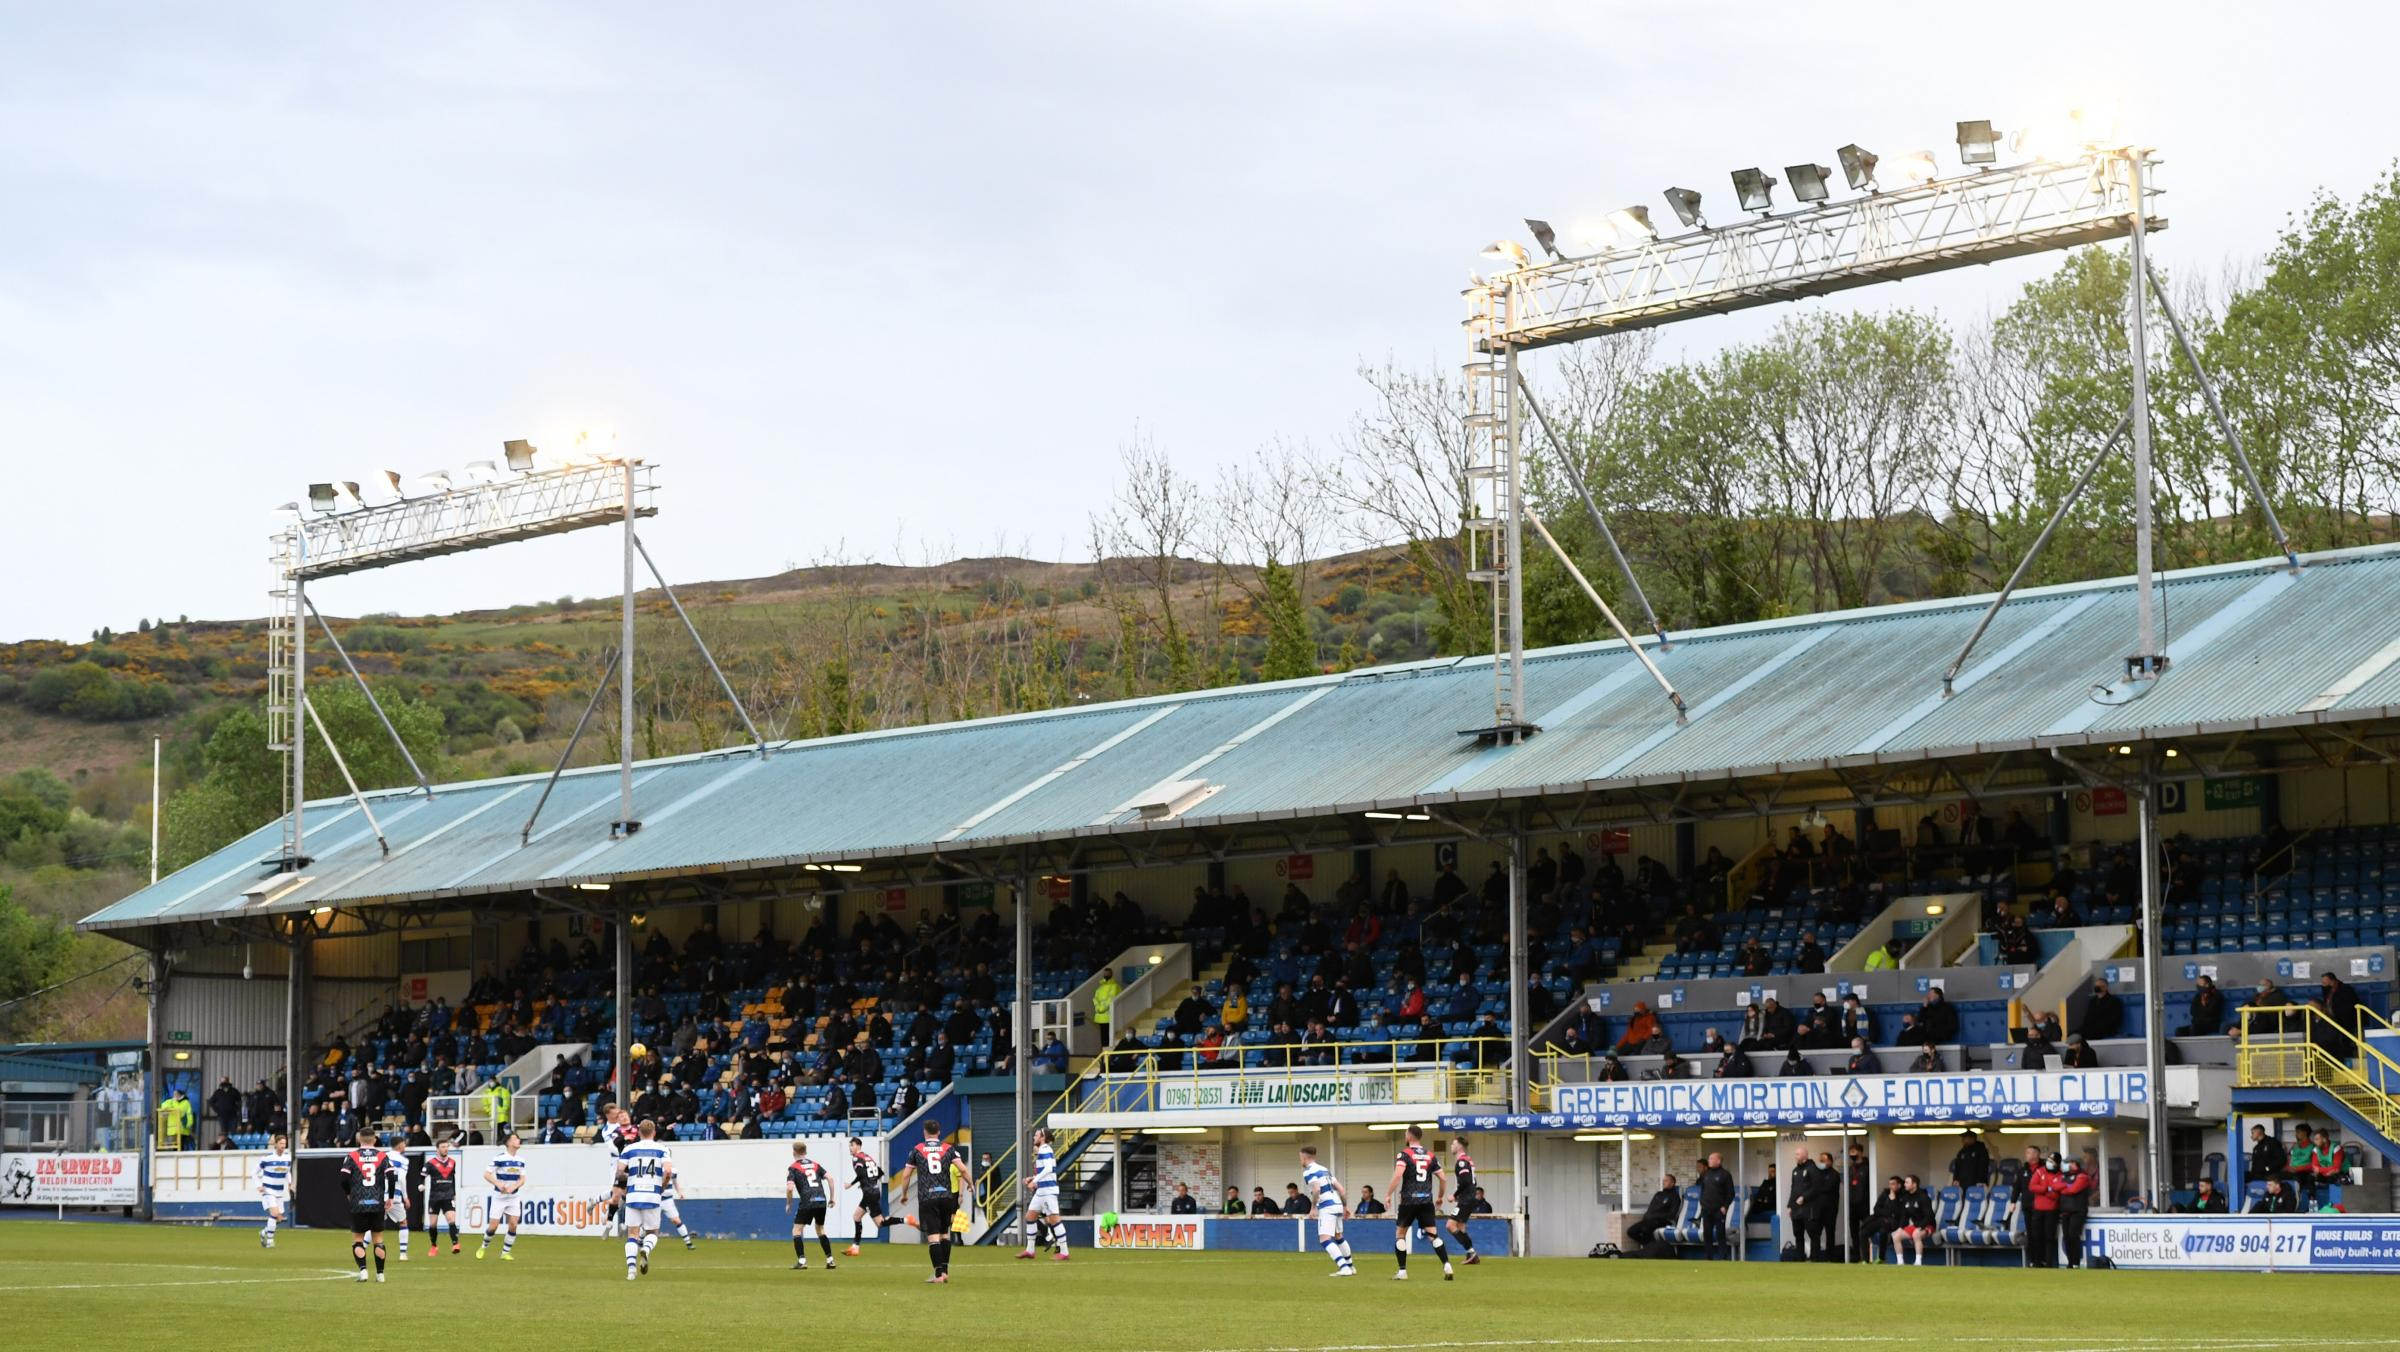 Greenock Morton latest club hit with Covid outbreak as they forfeit cup tie after 'multiple' players hit